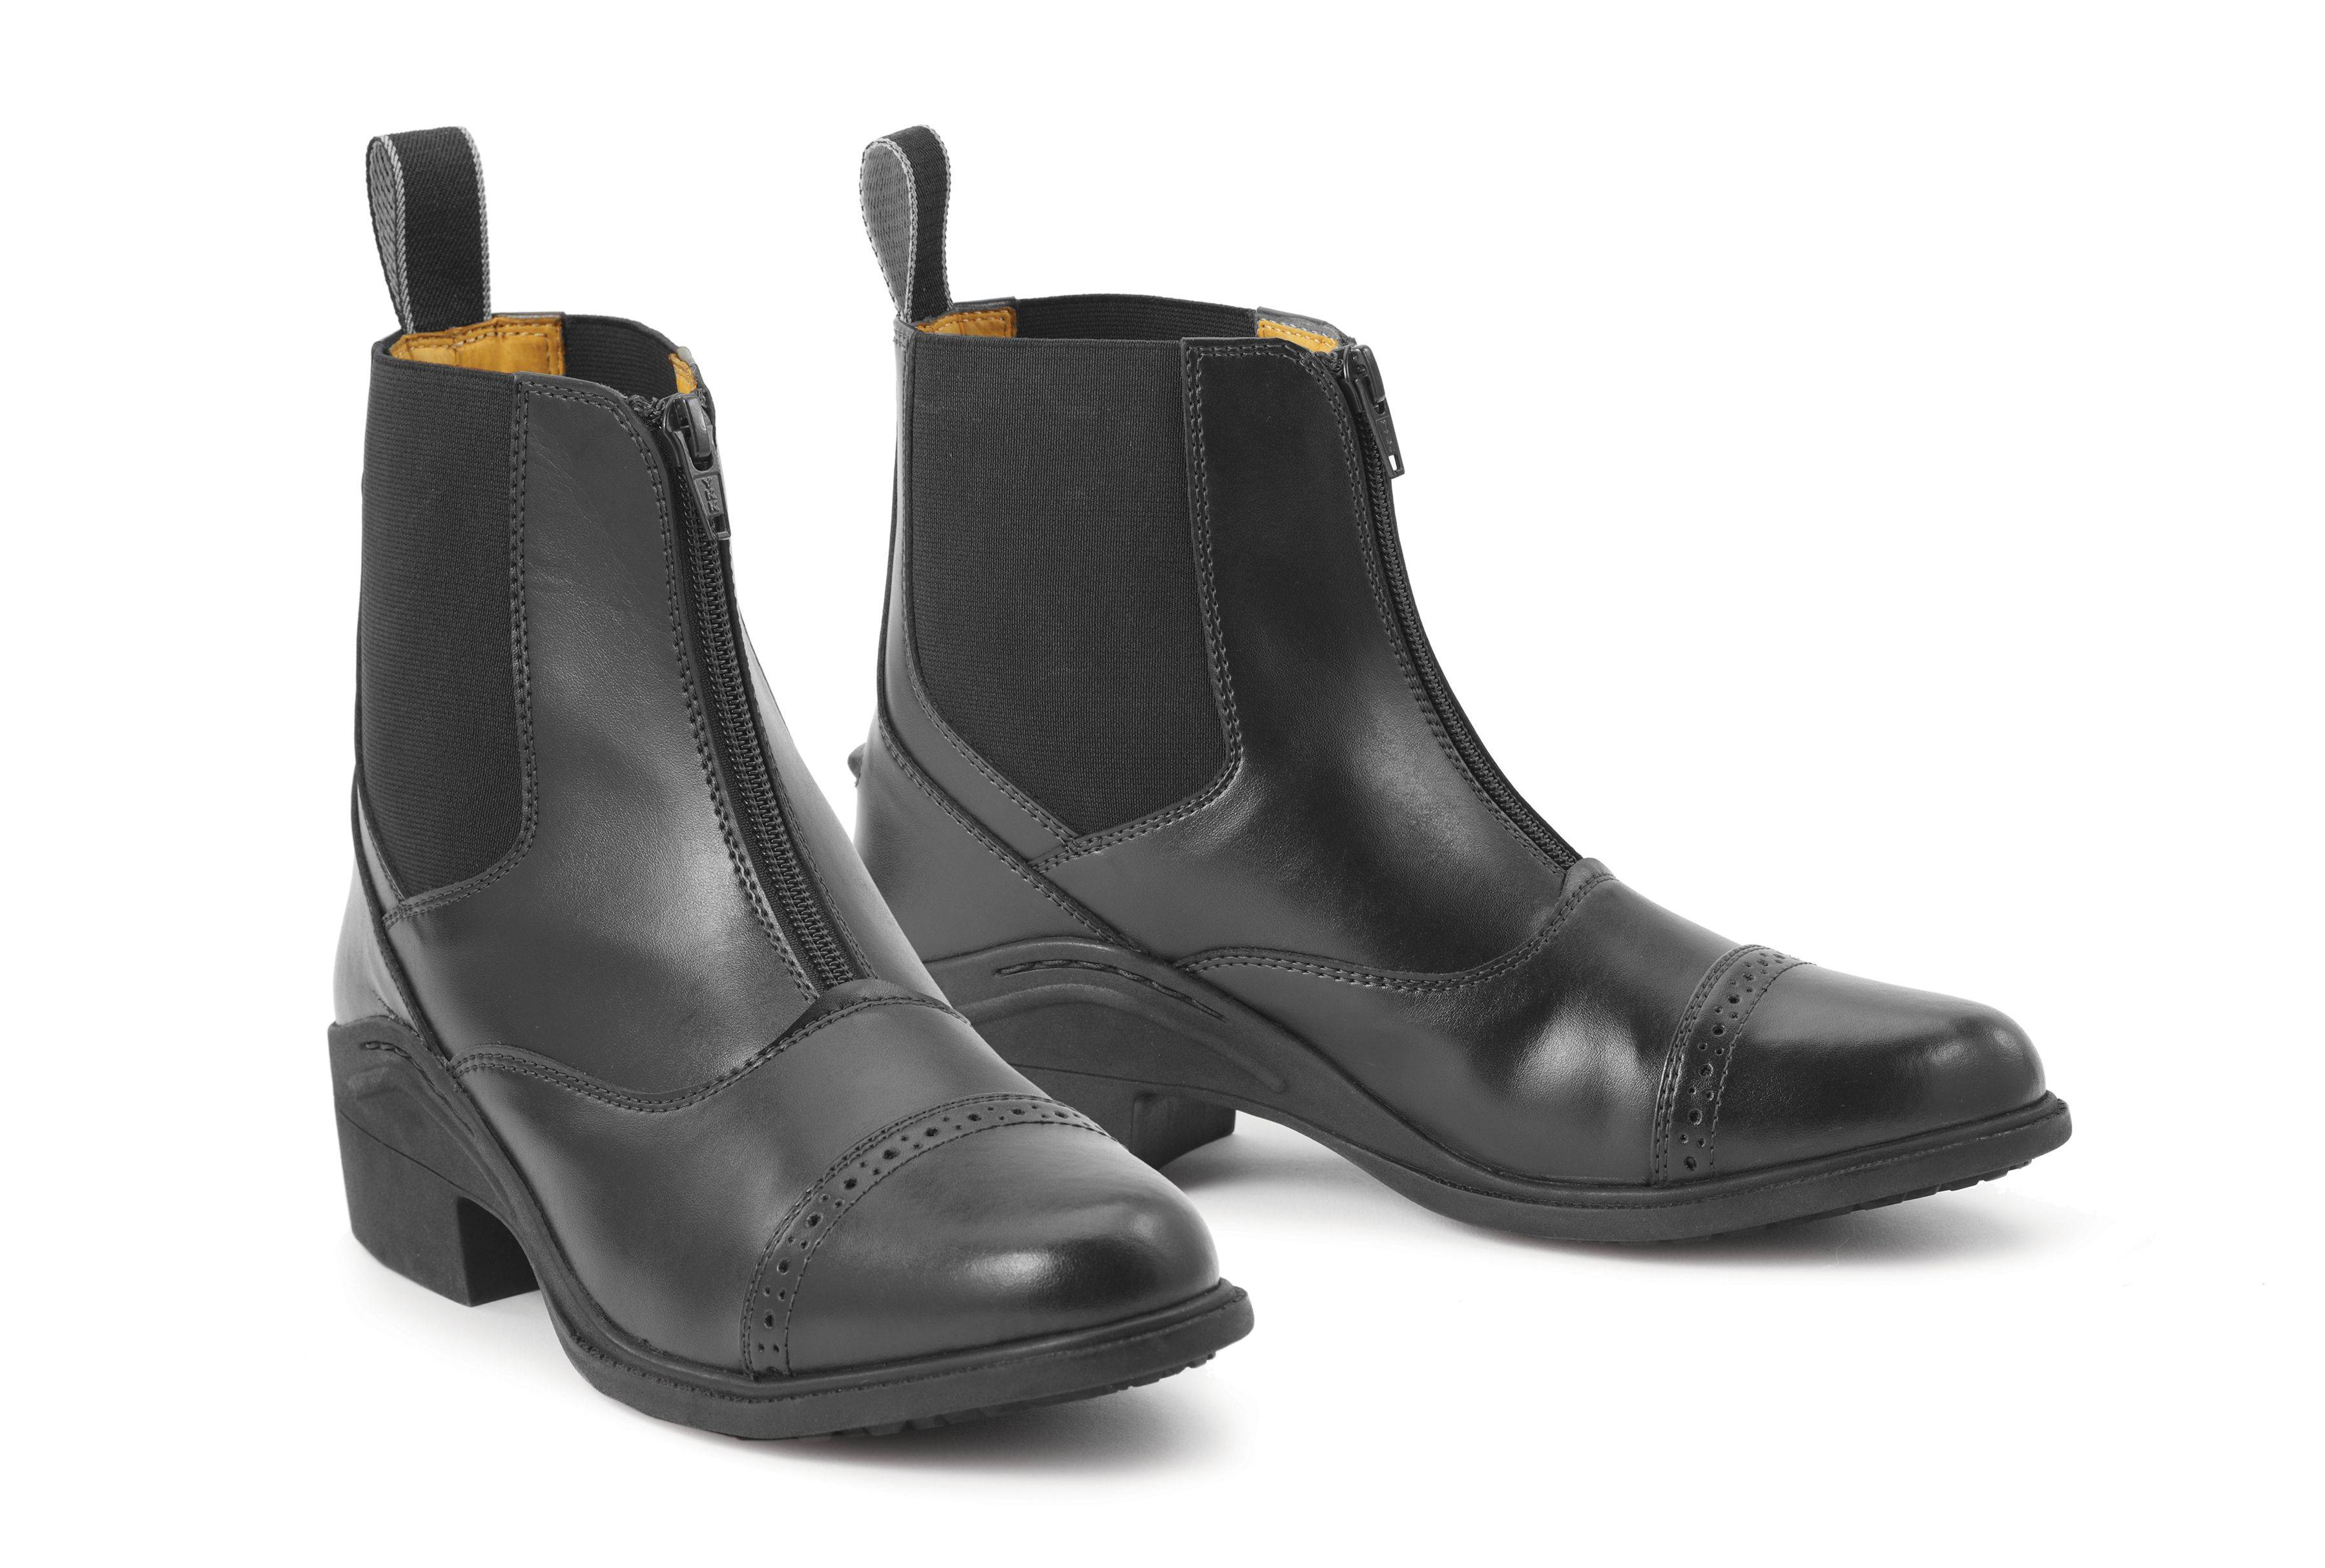 Ovation Synergy Front Zip Paddock Boots - Ladies